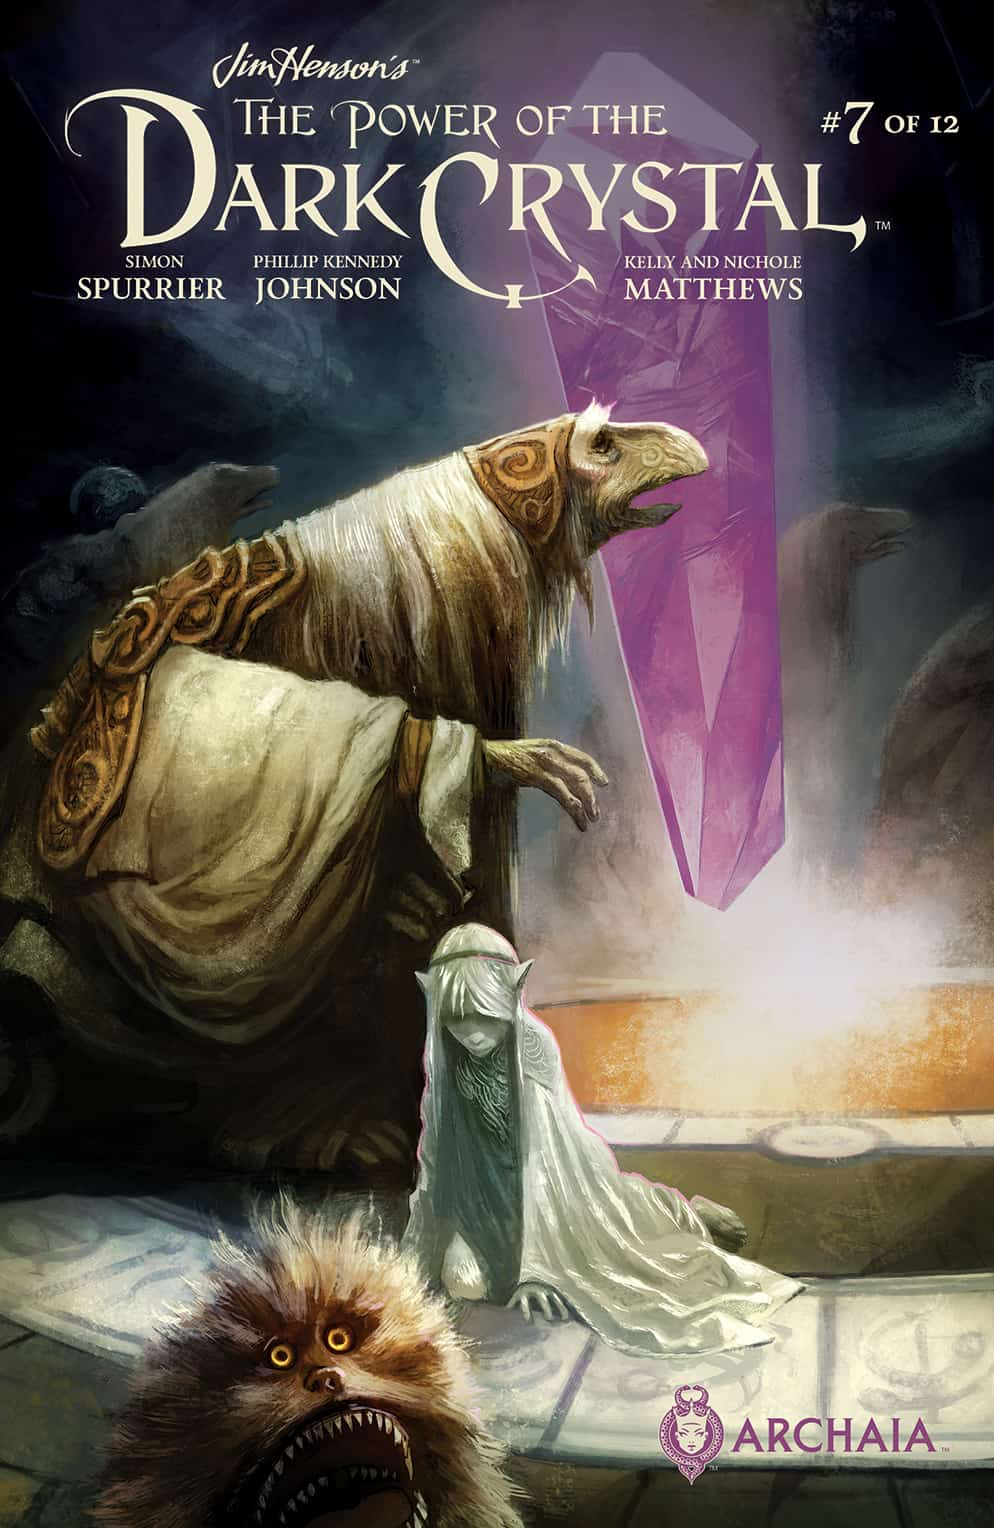 The Power of the Dark Crystal #7 (of 12)